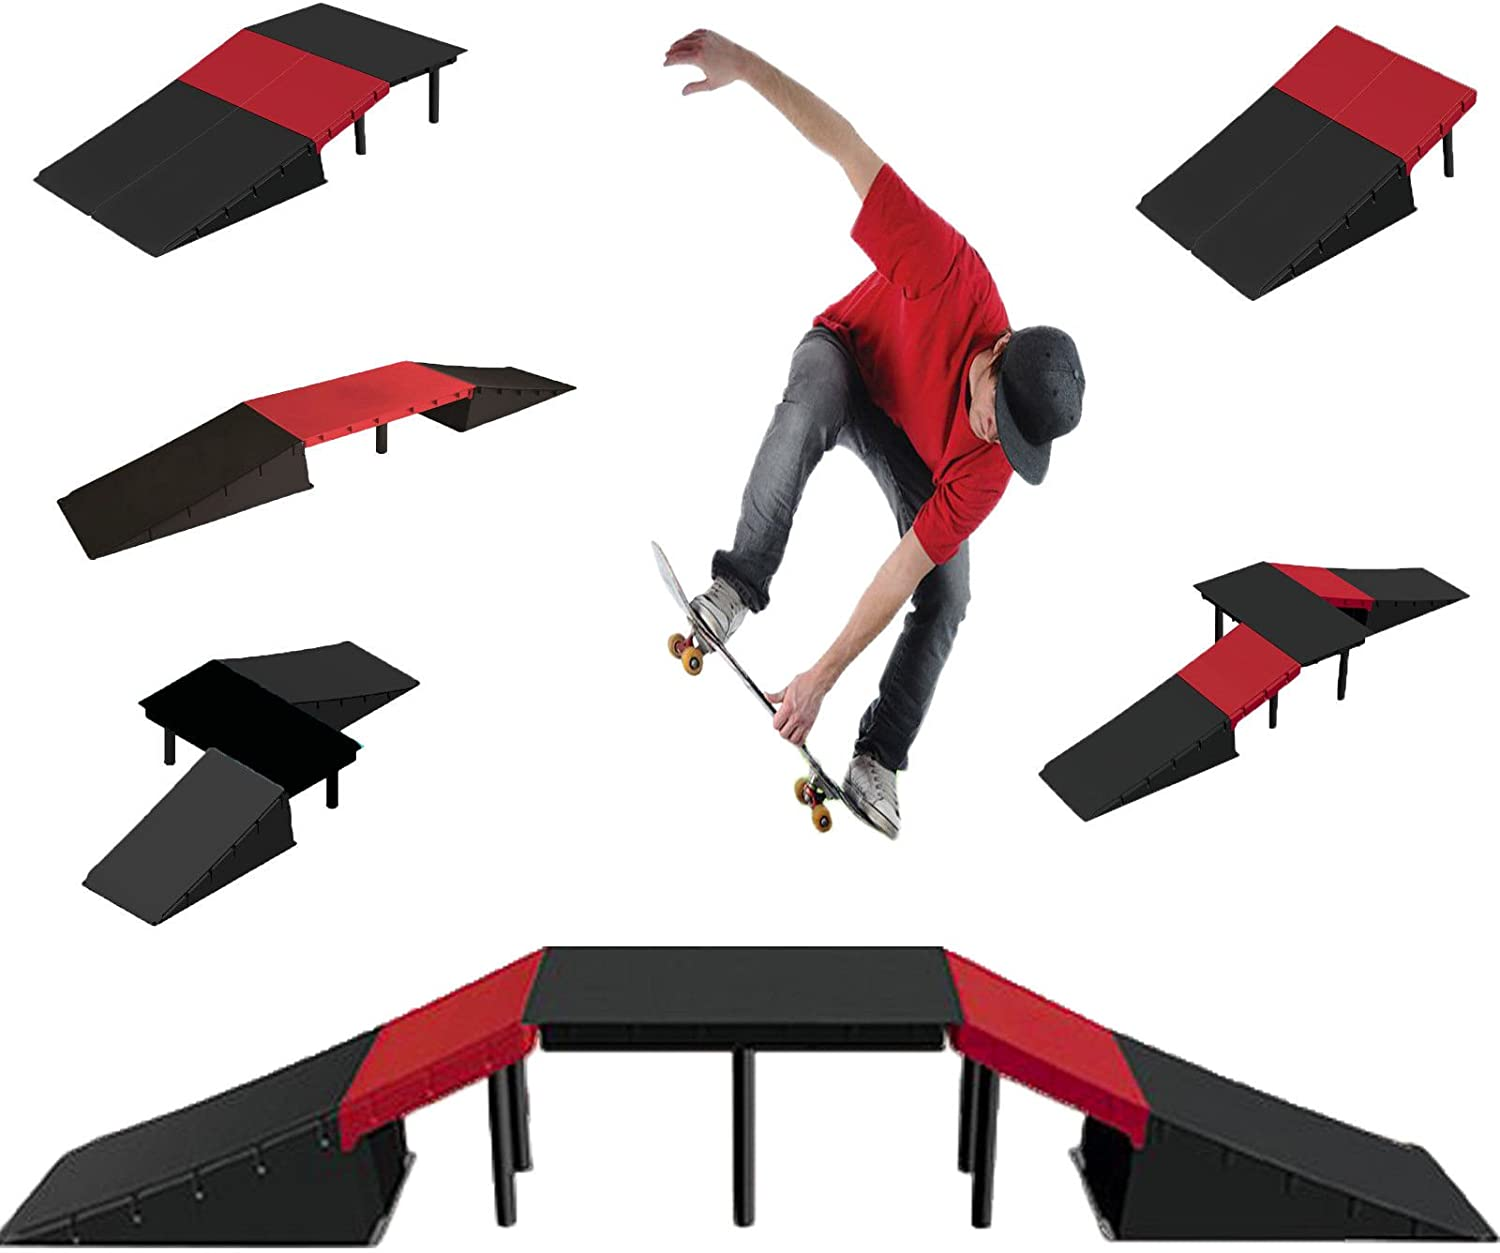 New  KIDS/' TOYS BICYCLE SCOOTER SKATE BOARD RAMP HEIGHT:15.3cm RAMP EDGE M1.